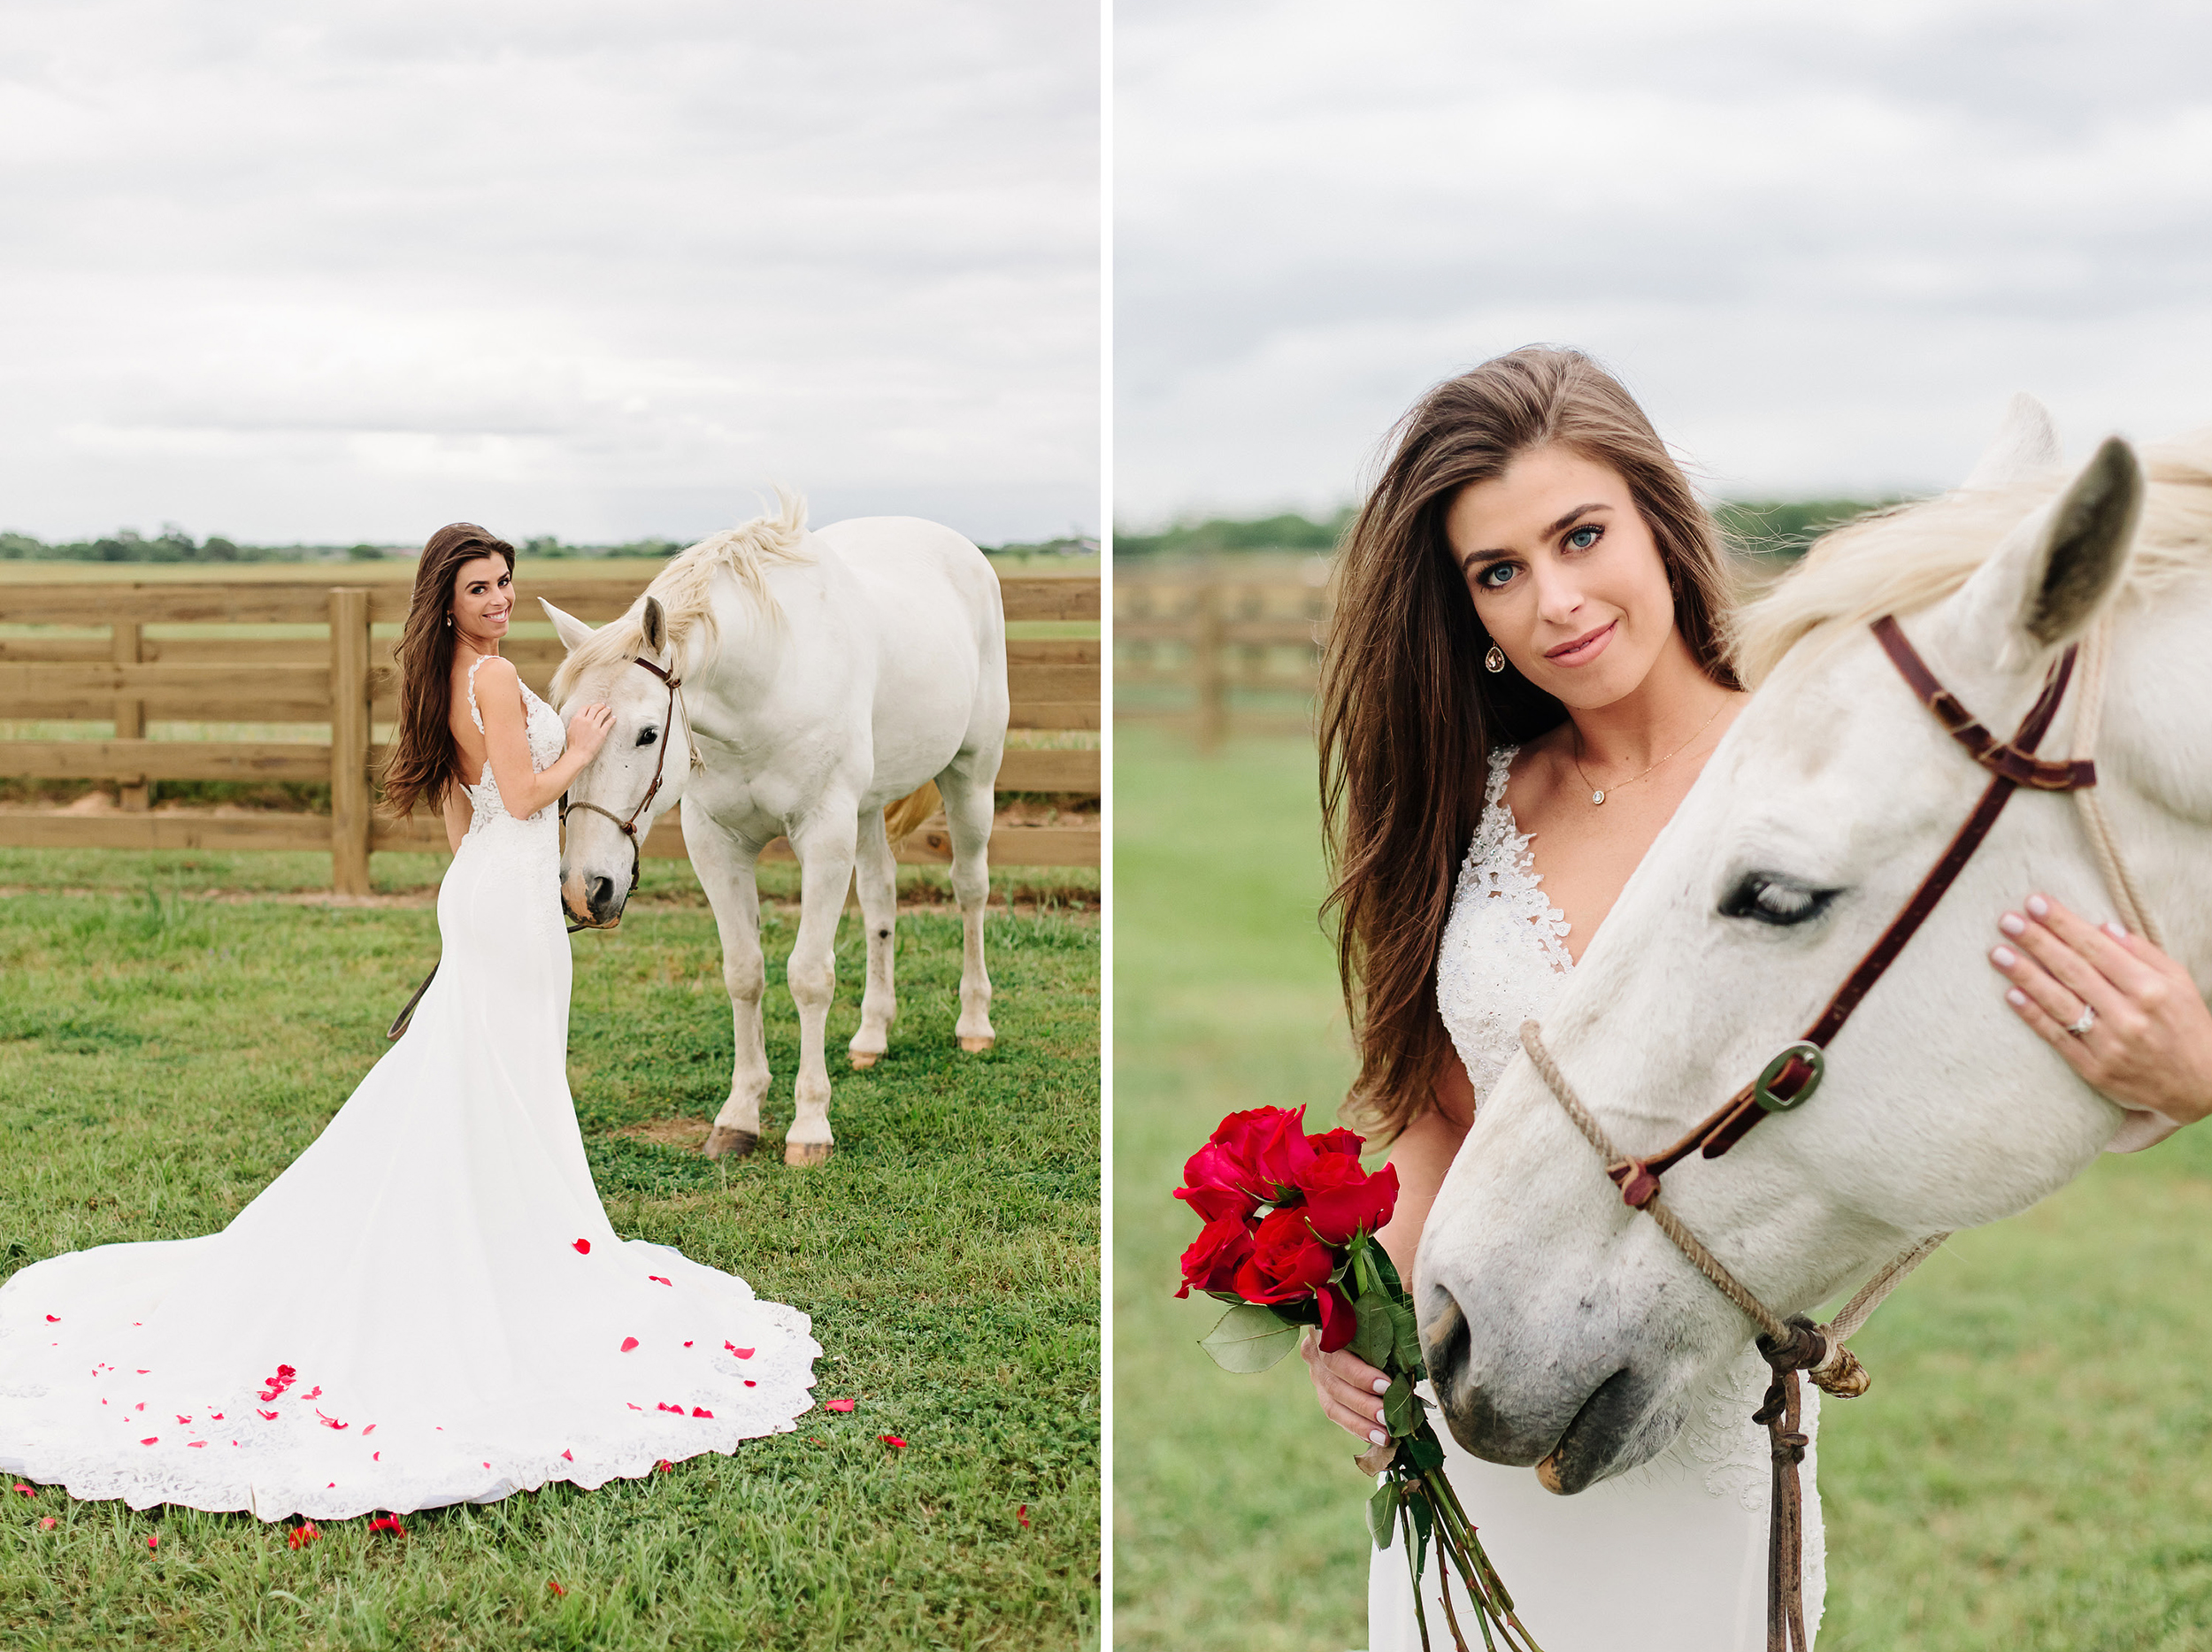 Bride with White Horse and Red Roses | Cassie Schott Photography